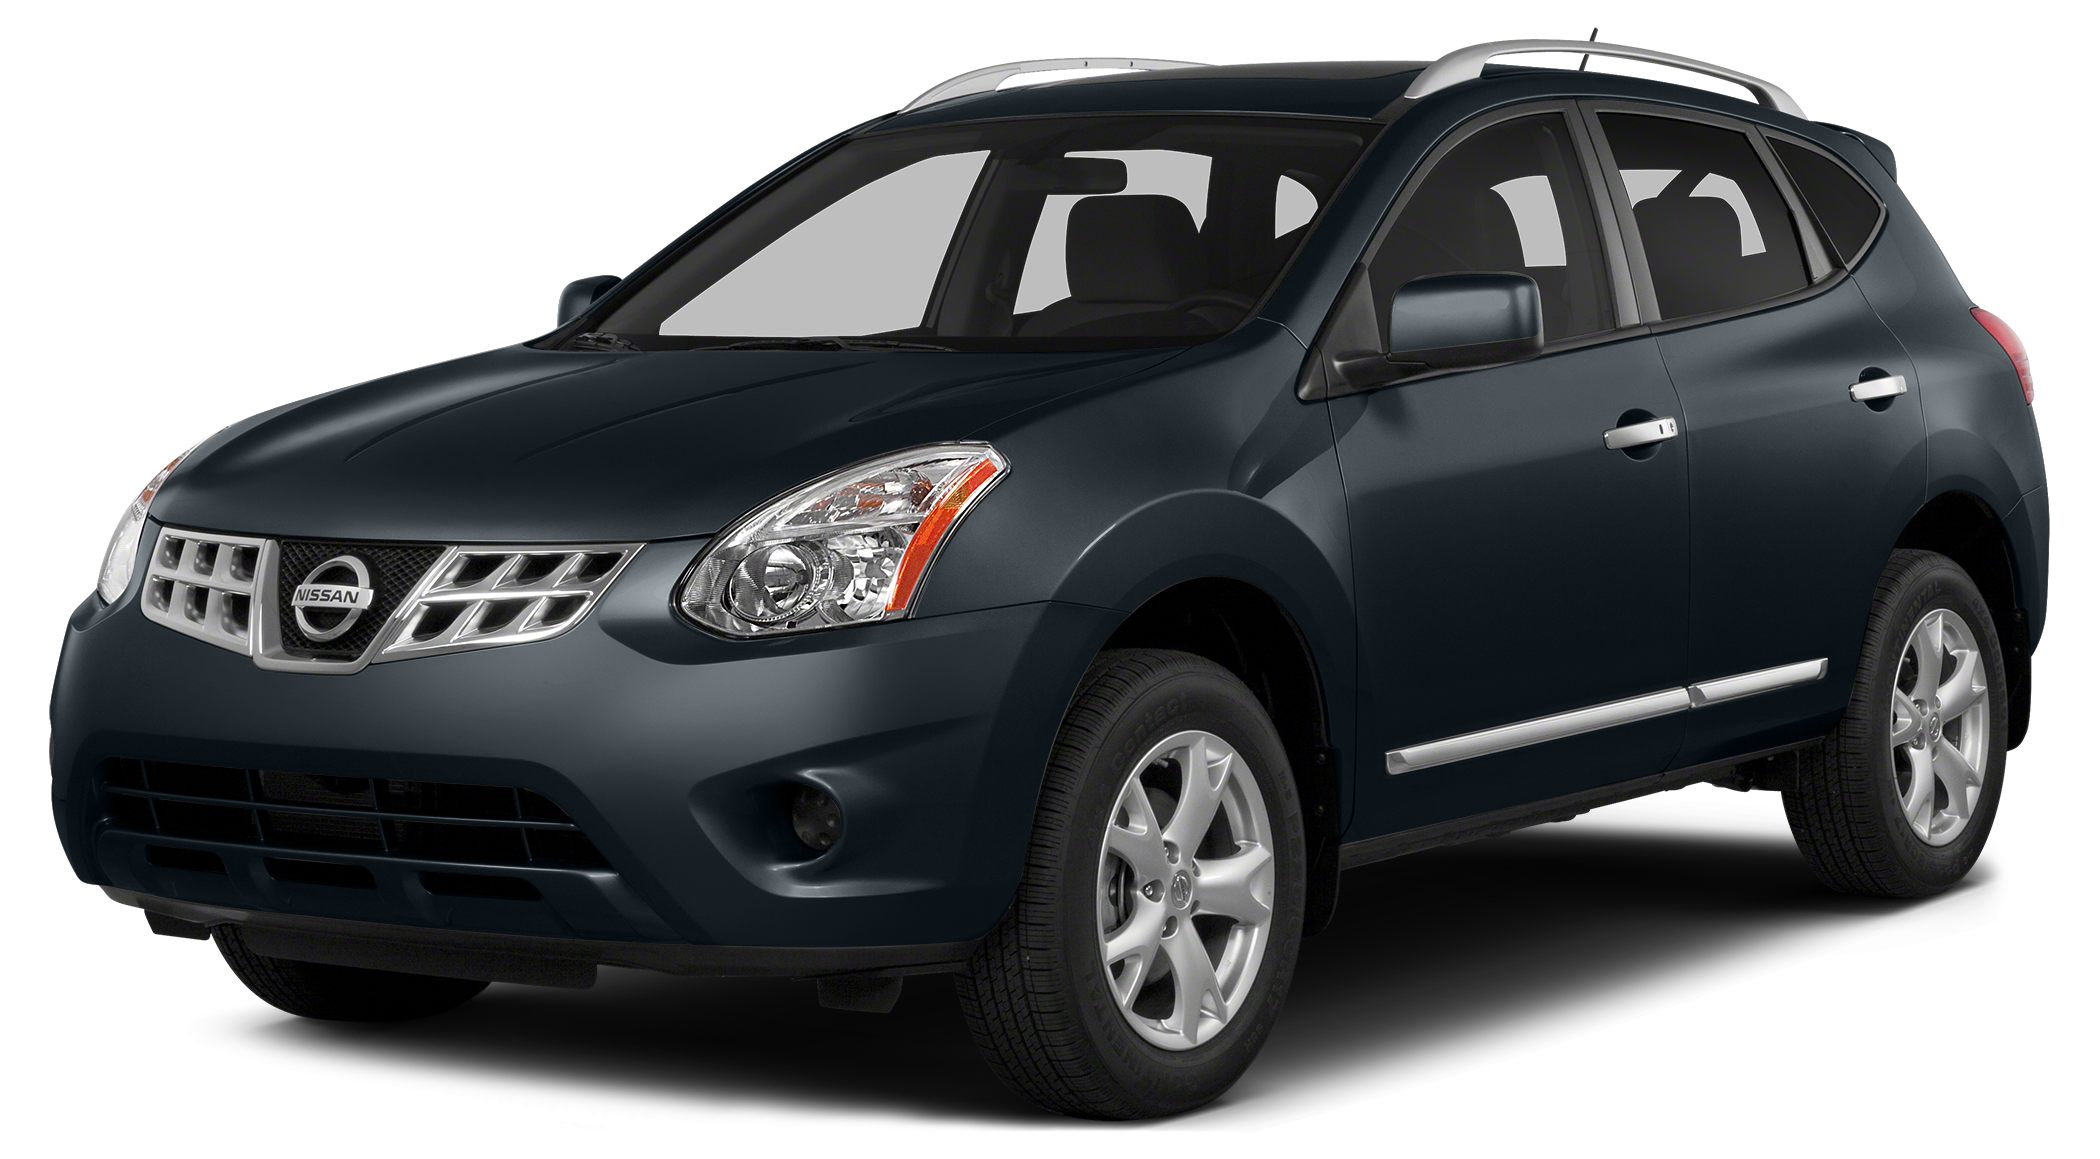 2015 Nissan Rogue Select S Miles 59546Color Graphite Blue Stock PN17322 VIN JN8AS5MT9FW66215